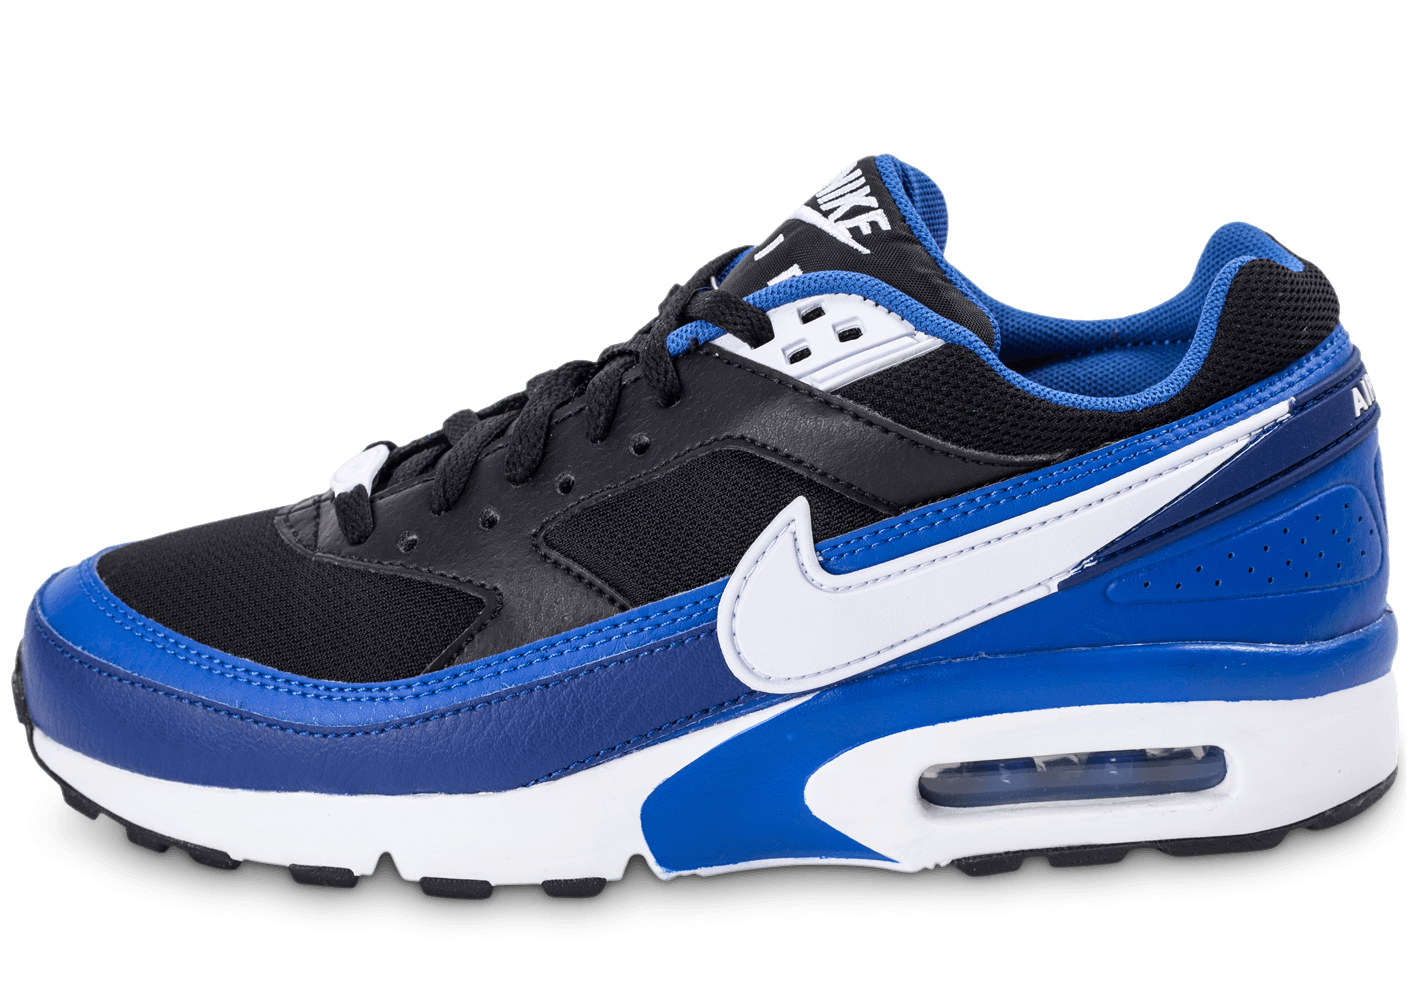 new style 92f3c 5e629 Nike Air Max BW Junior bleue - Chaussures Enfant - Chausport